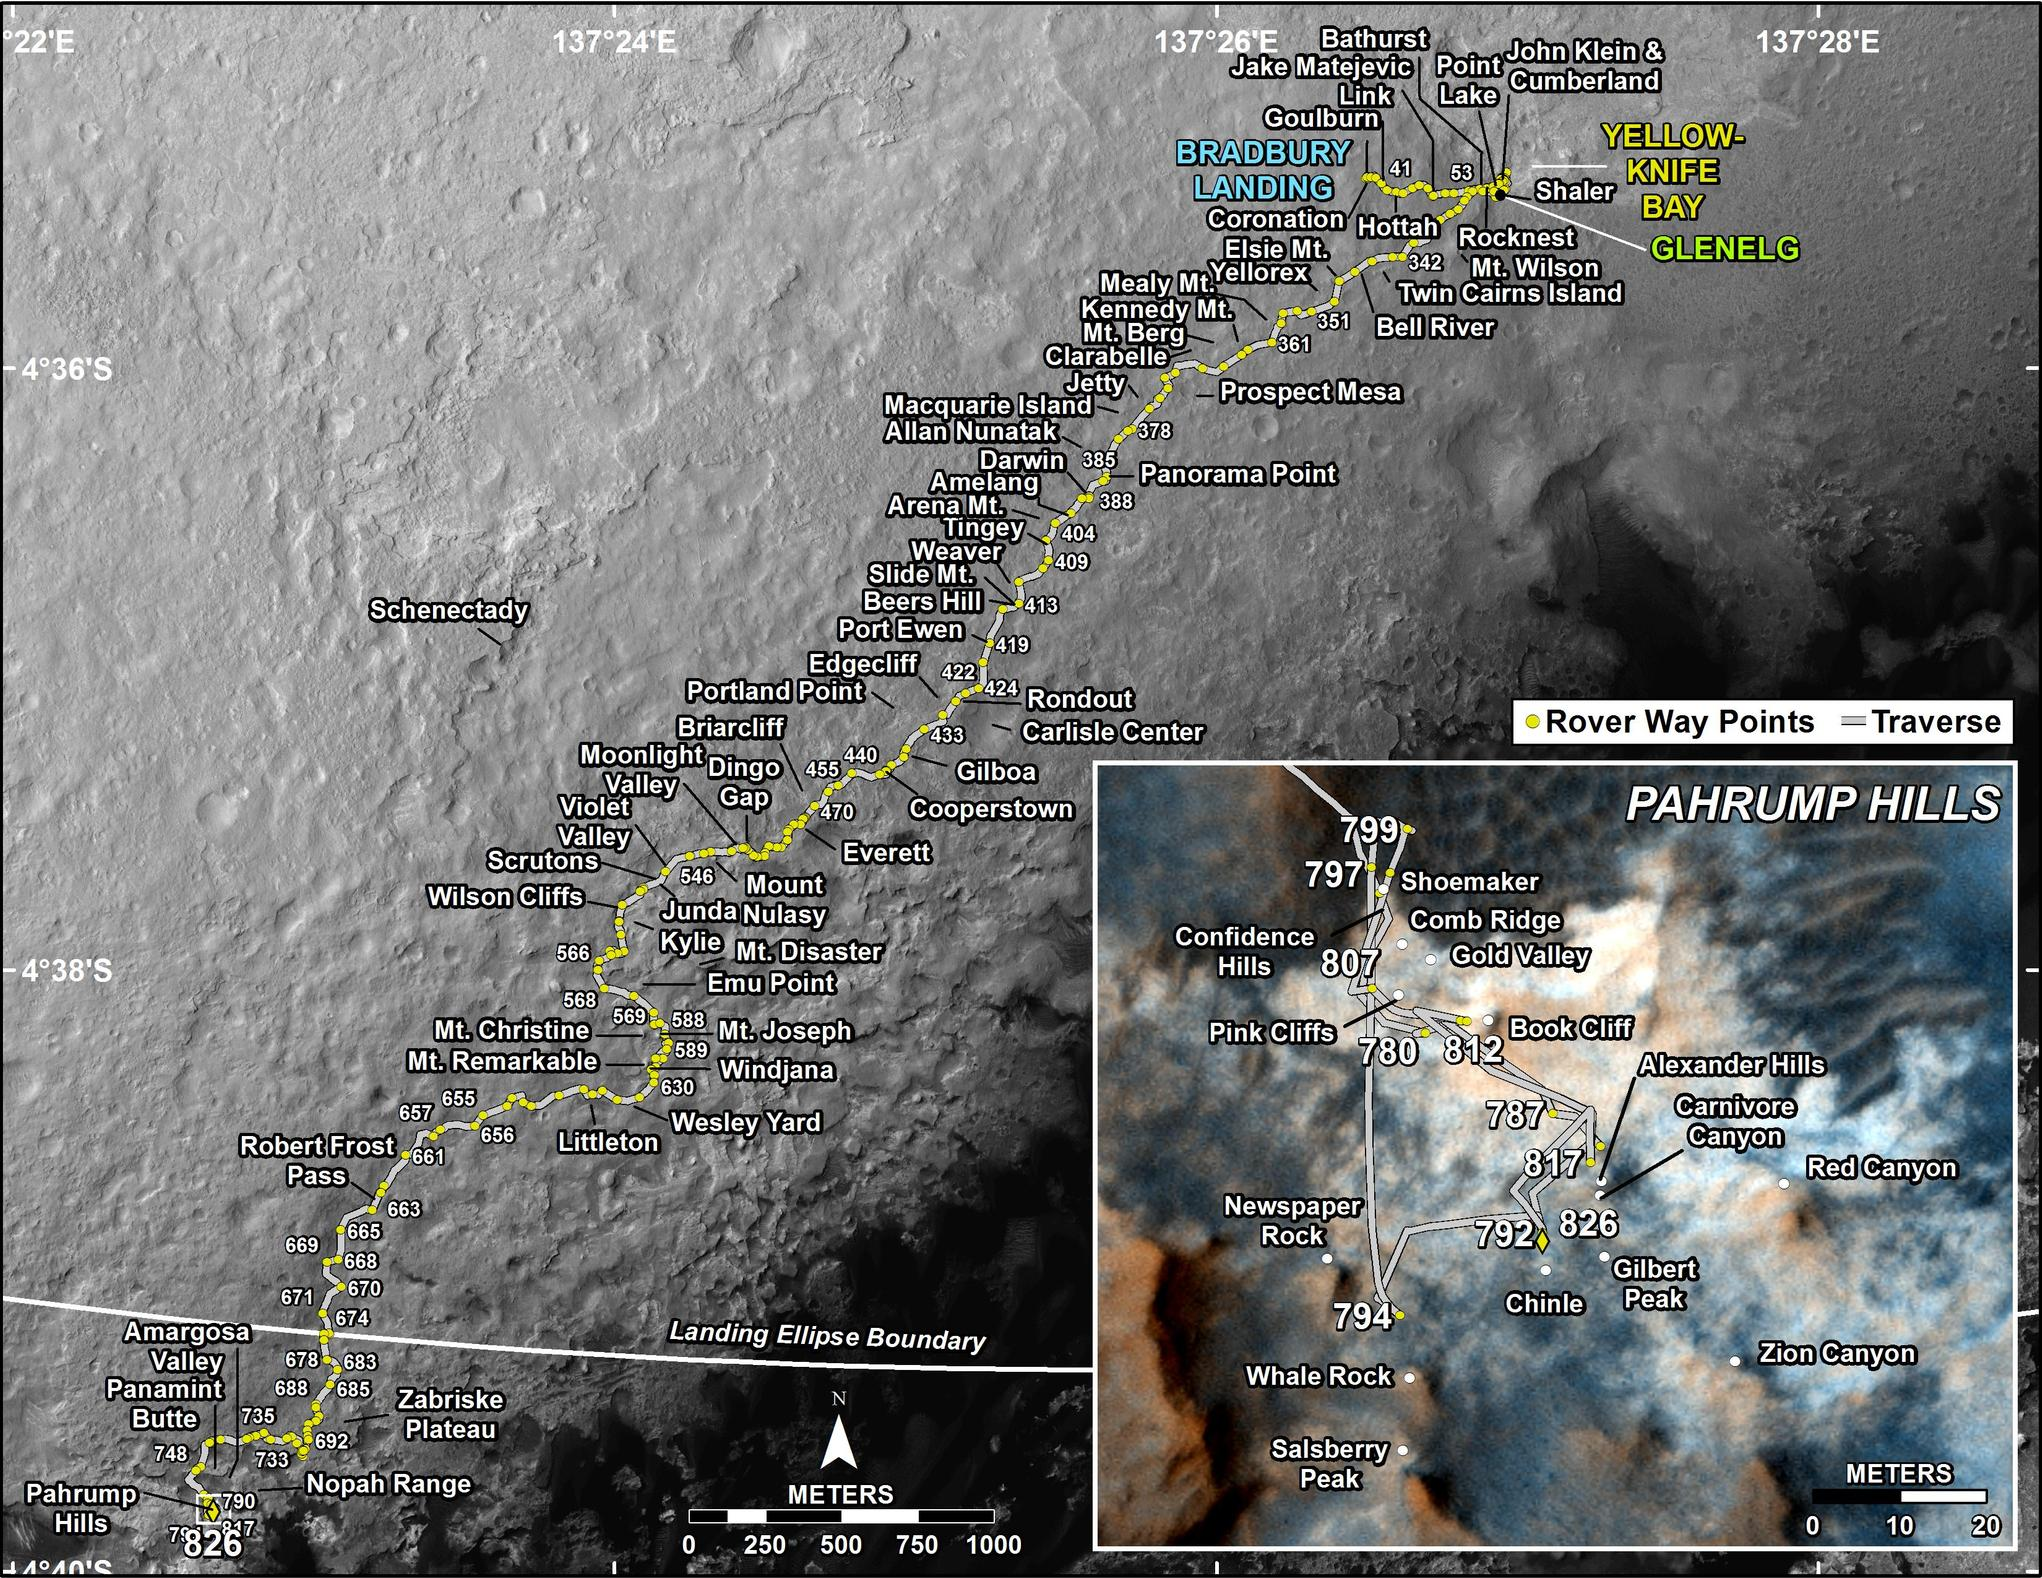 This map shows the route driven by NASA's Mars rover Curiosity through the 826 Martian day, or sol, of the rover's mission on Mars (December, 03, 2014).